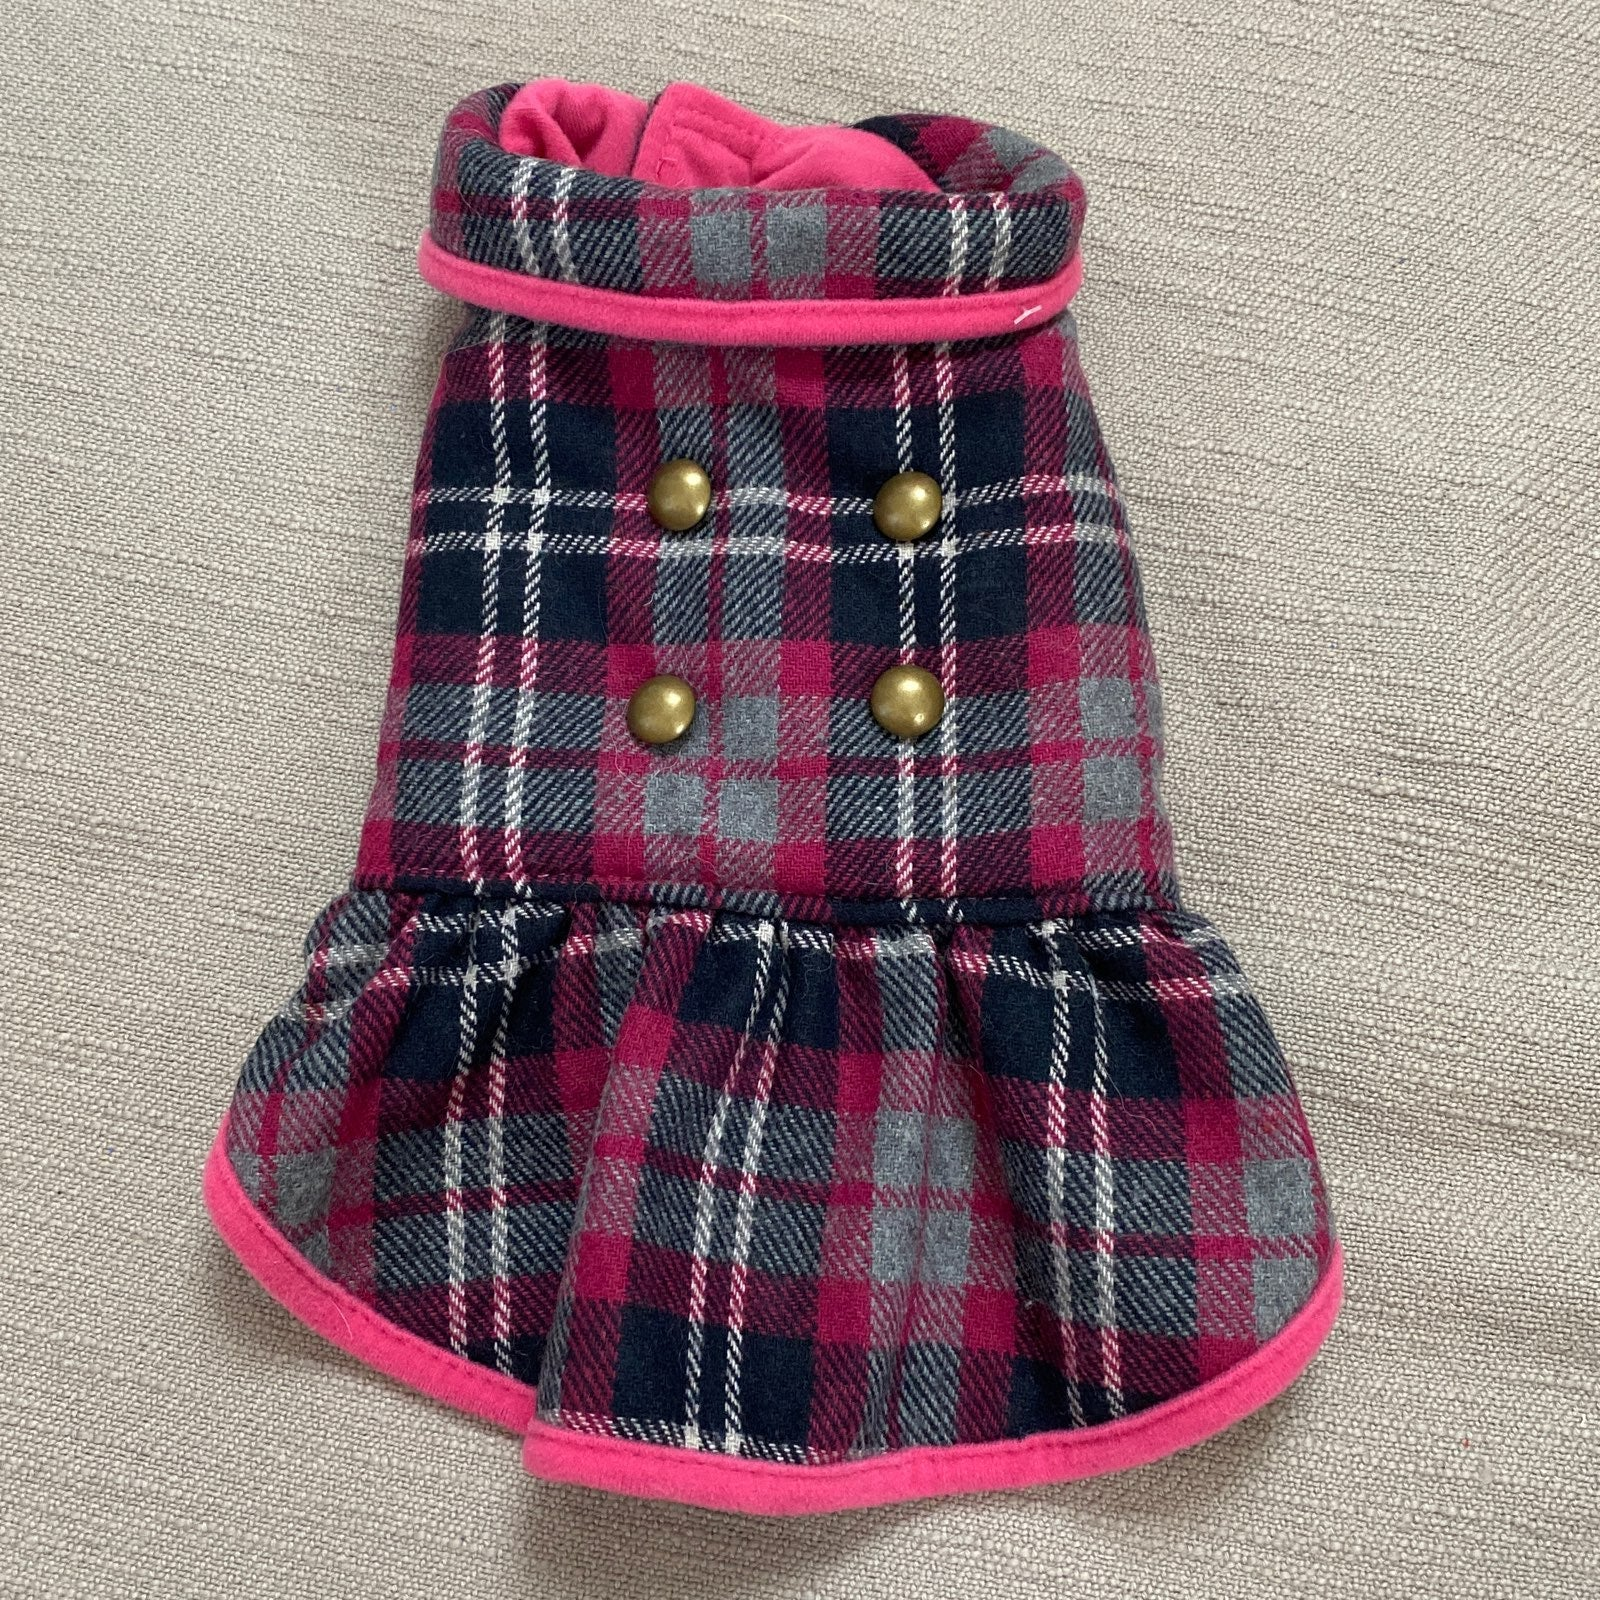 Plaid Doggy Outfit